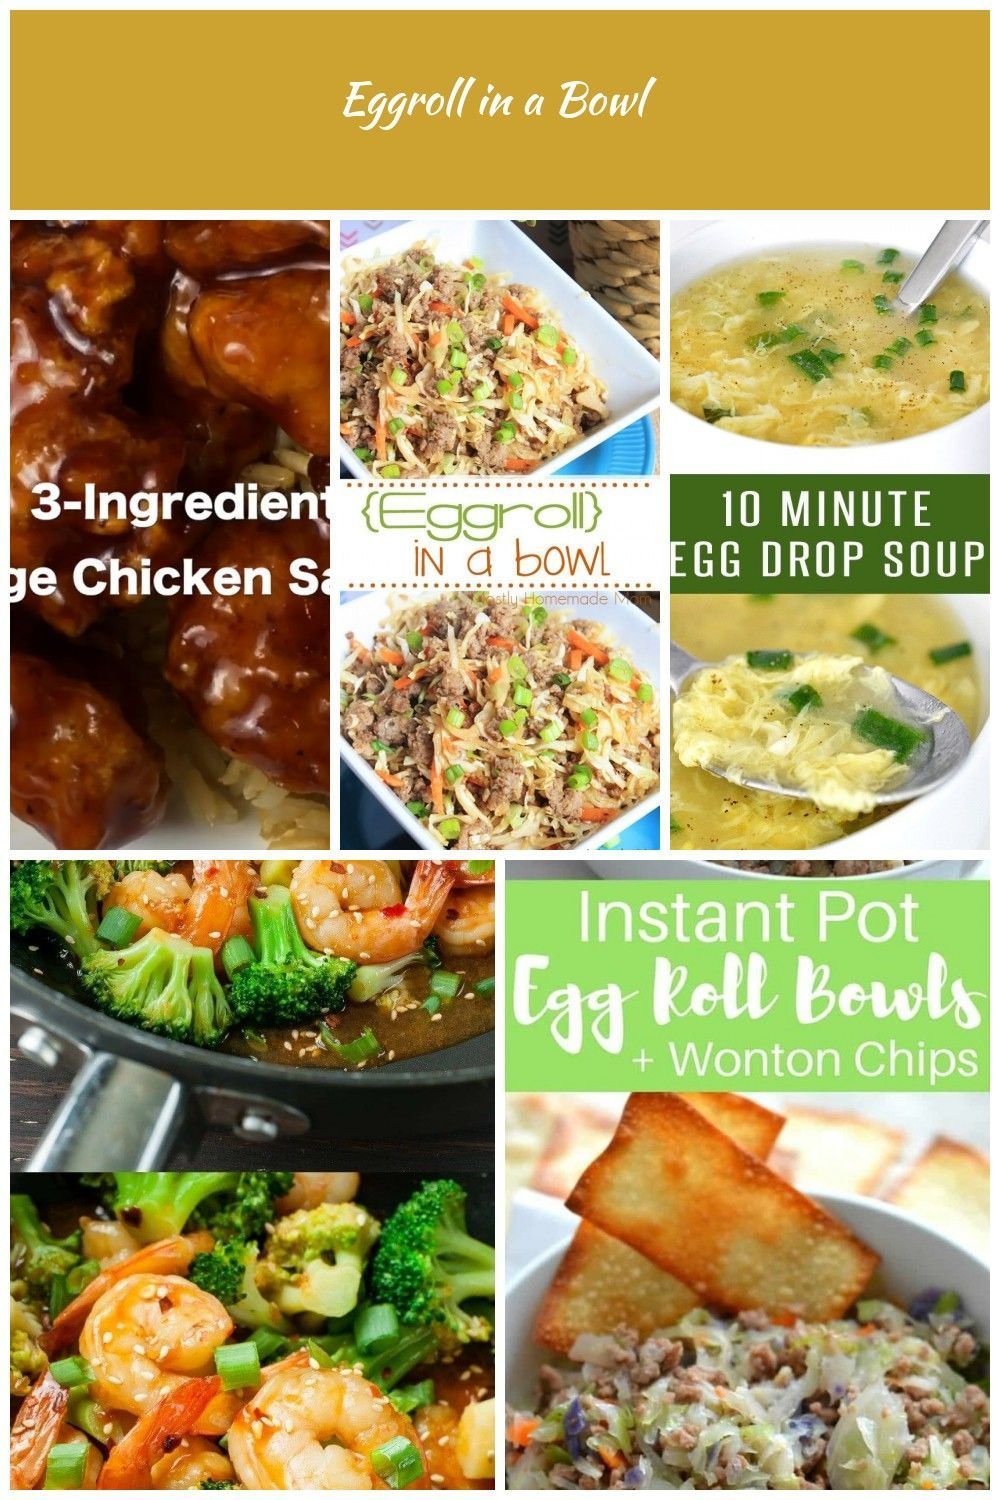 Make this 3 ingredient orange chicken for the perfect dinner! Easy chinese food at home. Orange chicken recipe chinese food 3-Ingredient Orange Chicken Sauce #chineseorangechicken Make this 3 ingredient orange chicken for the perfect dinner! Easy chinese food at home. Orange chicken recipe chinese food 3-Ingredient Orange Chicken Sauce #chineseorangechicken